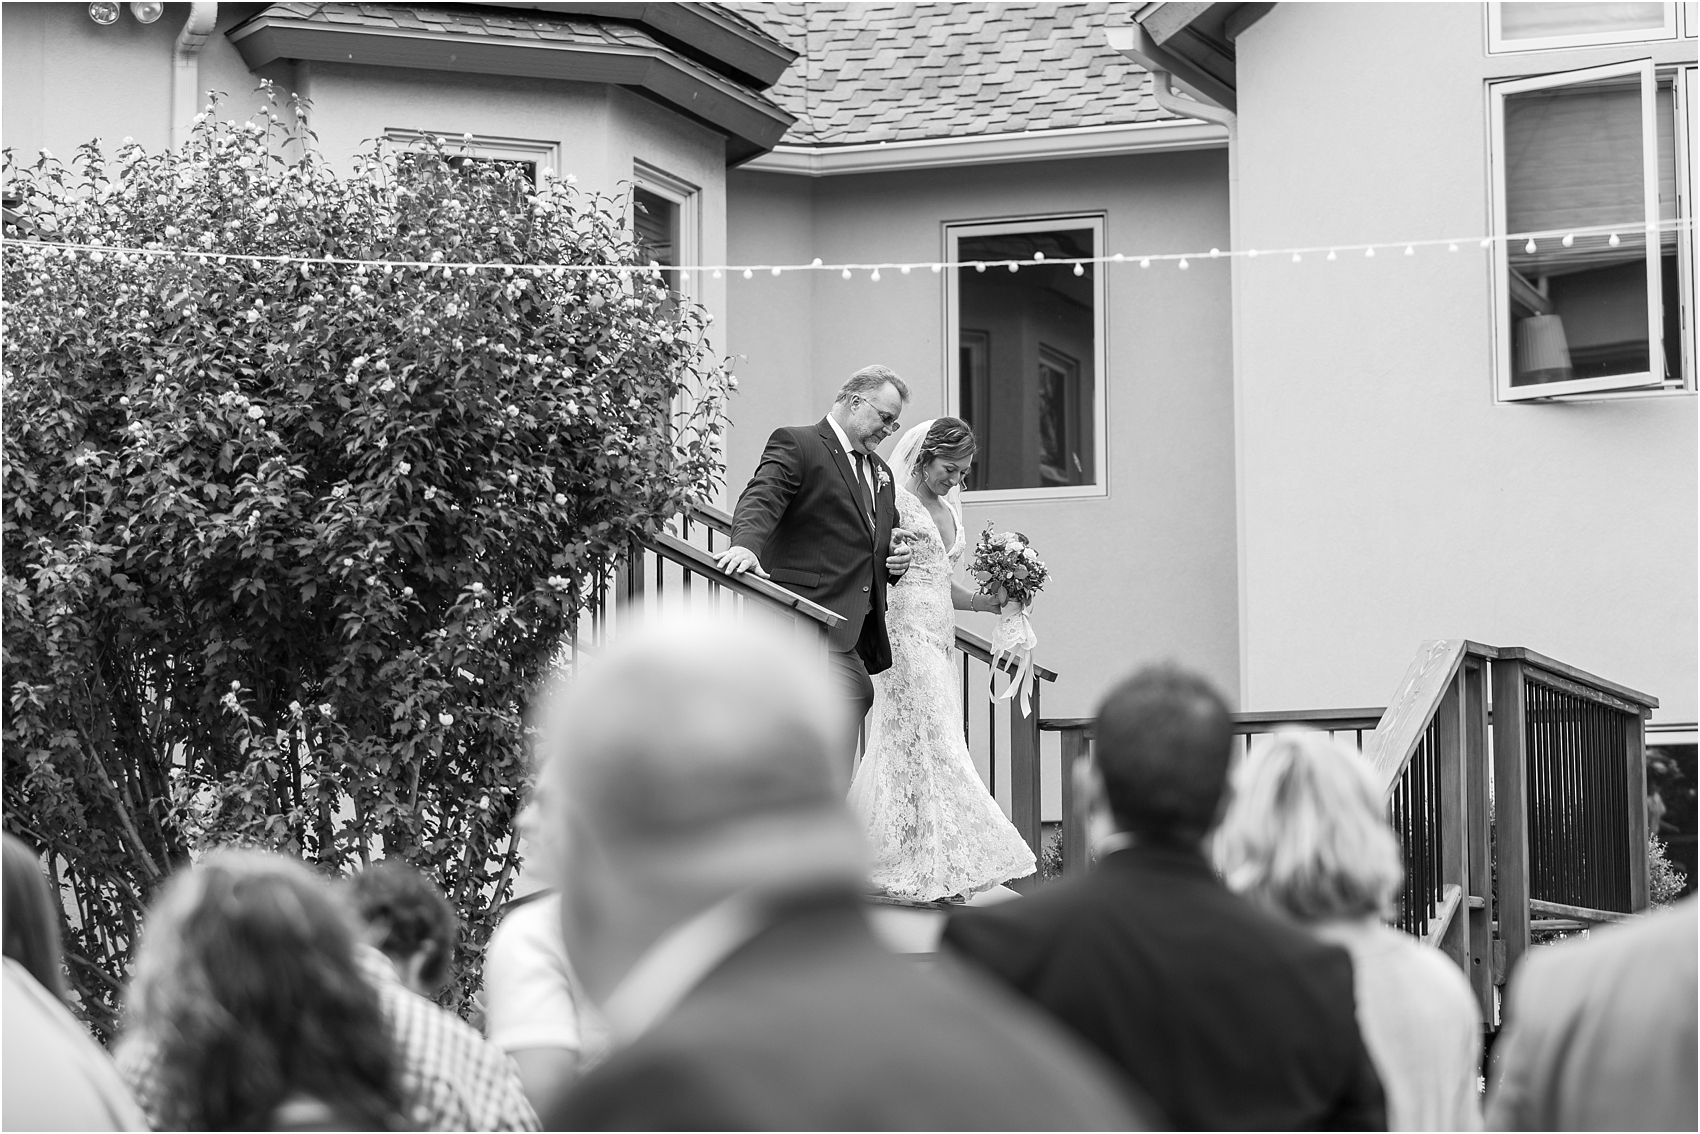 romantic-intimate-backyard-wedding-photos-at-private-estate-in-ann-arbor-mi-by-courtney-carolyn-photography_0089.jpg